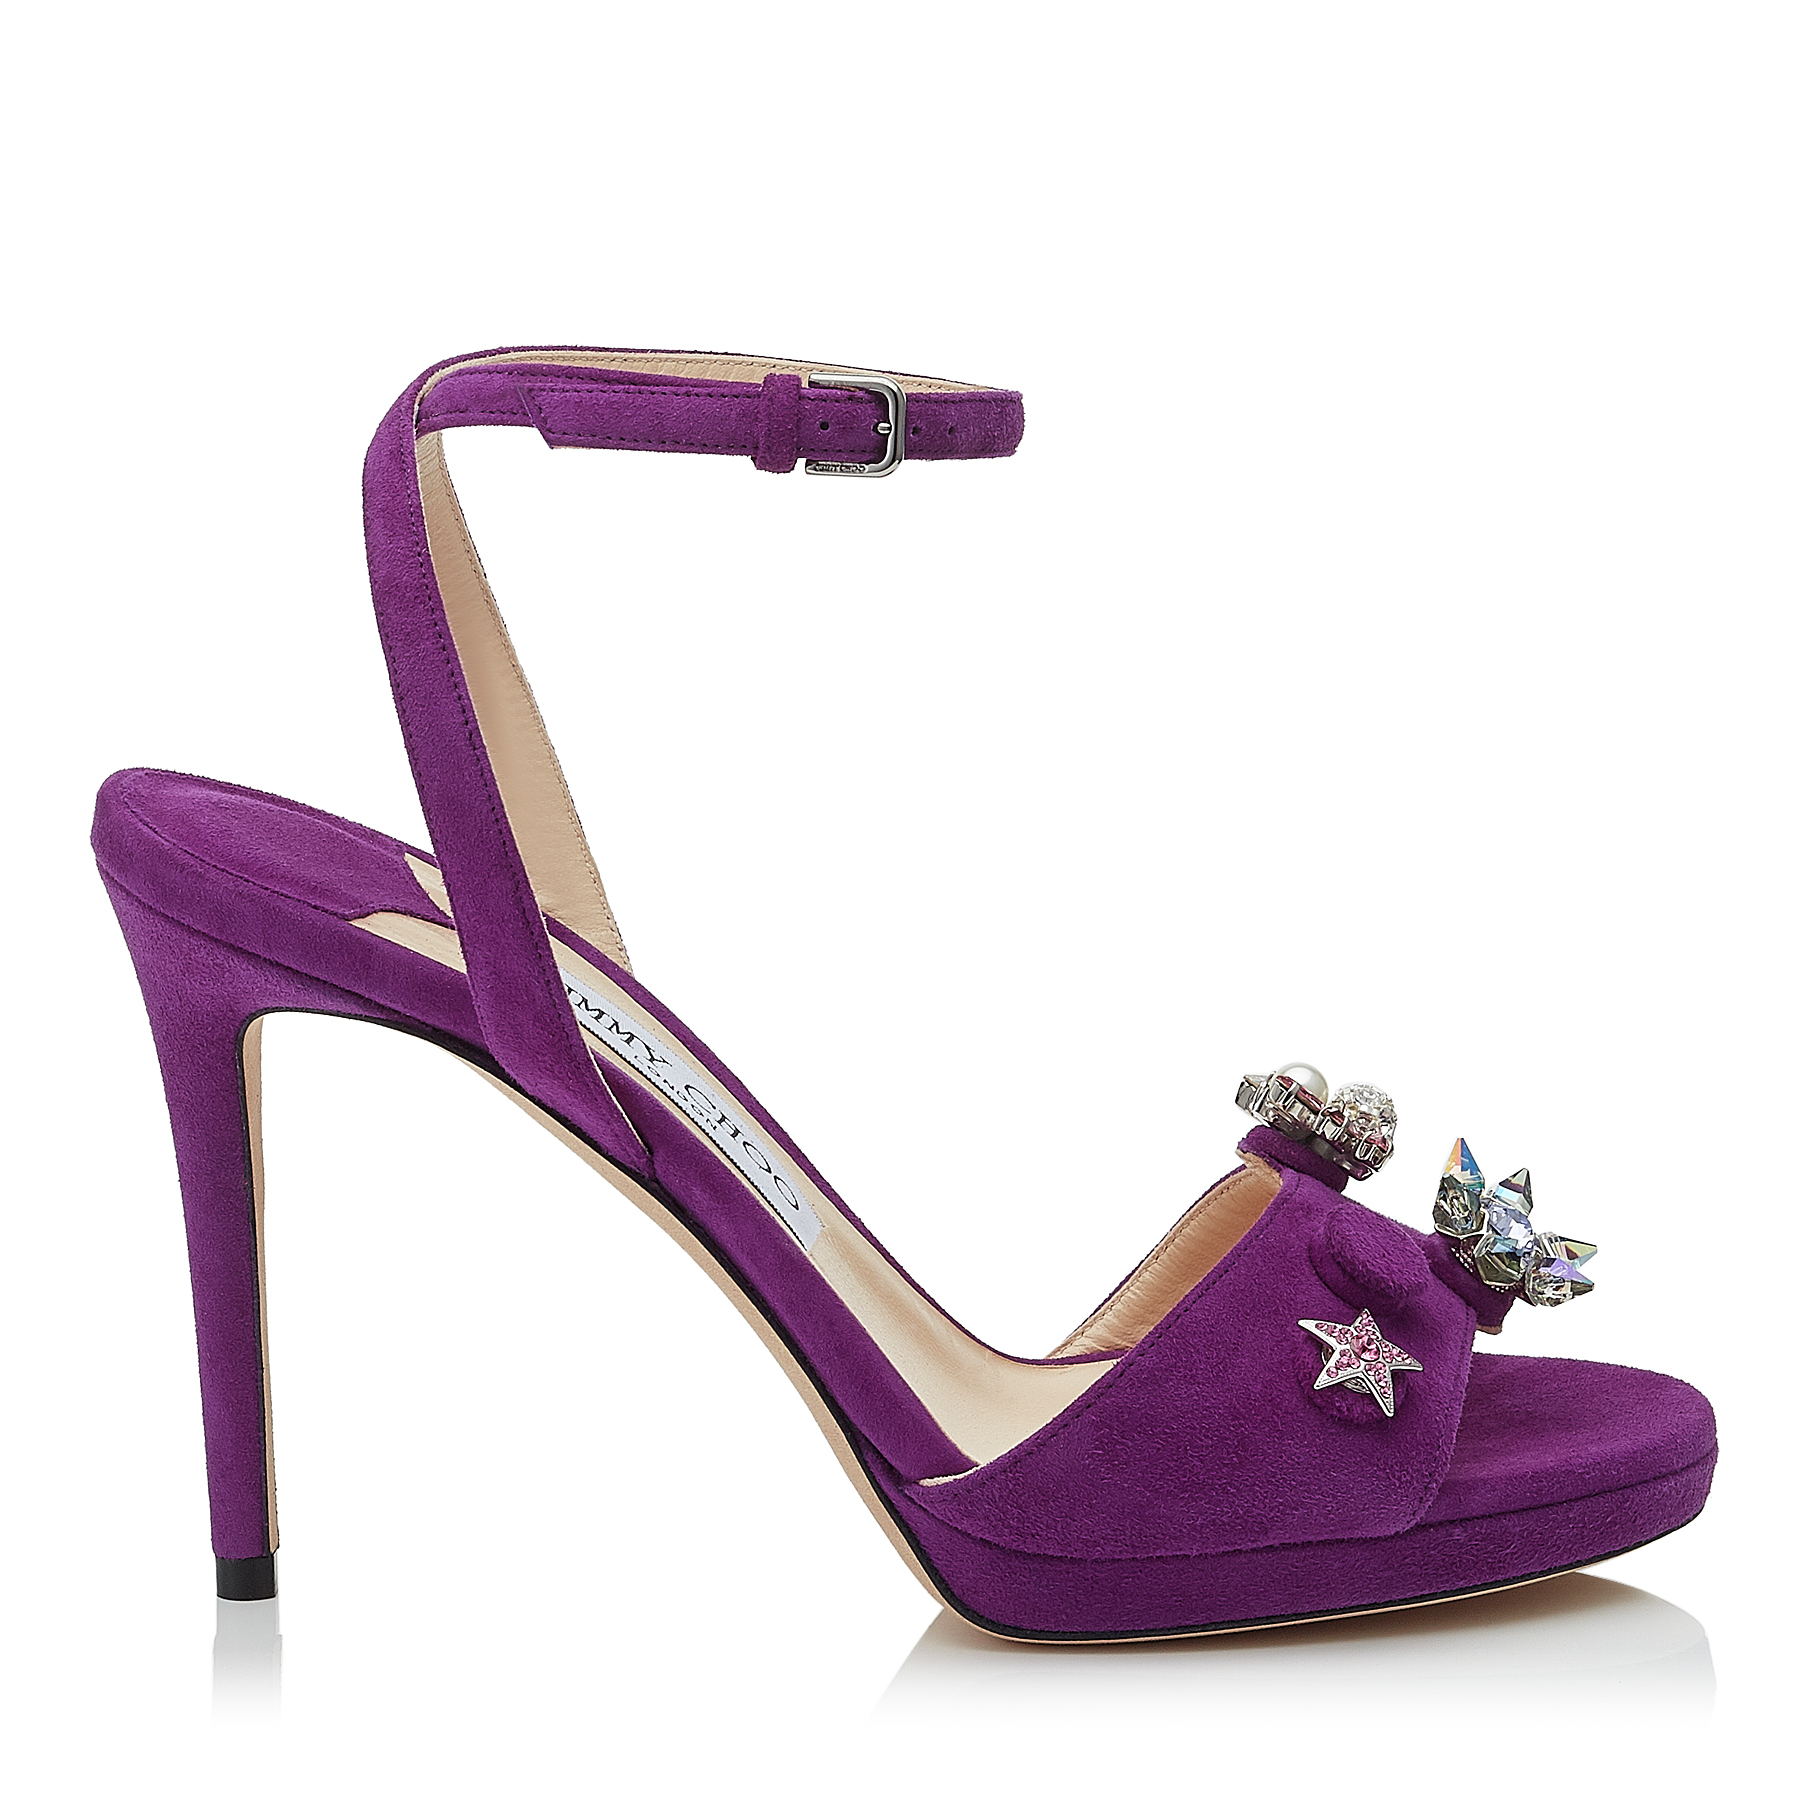 ELECTRA 100 Madeline Suede Sandals with Jewelled Buttons